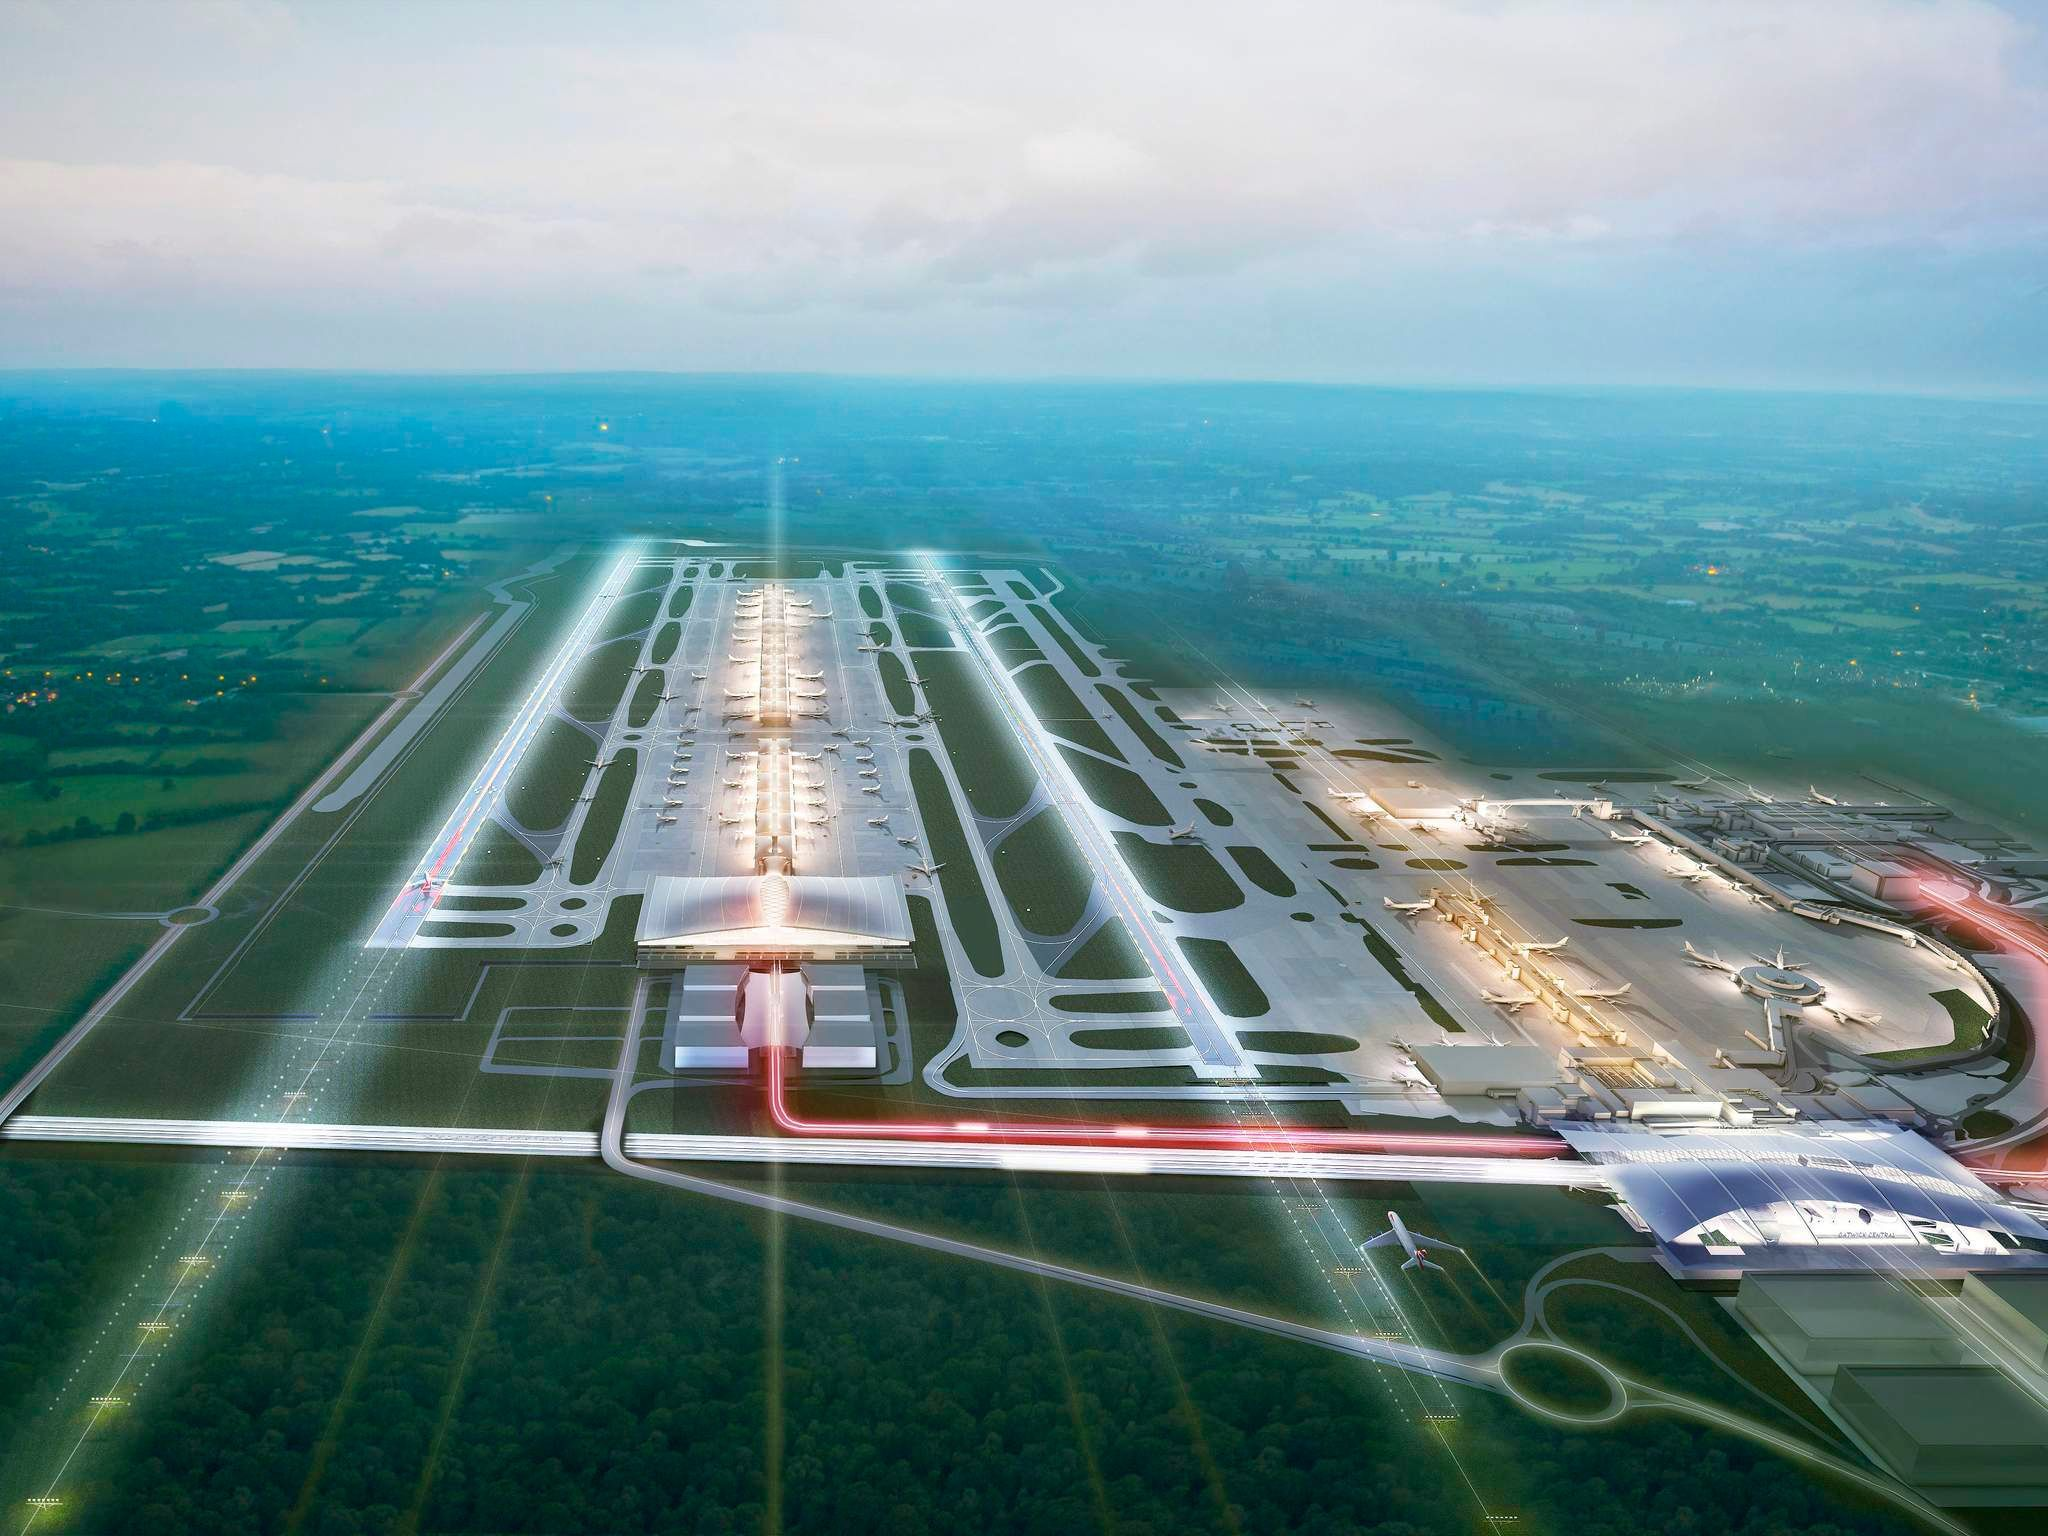 proposal to build a second runway